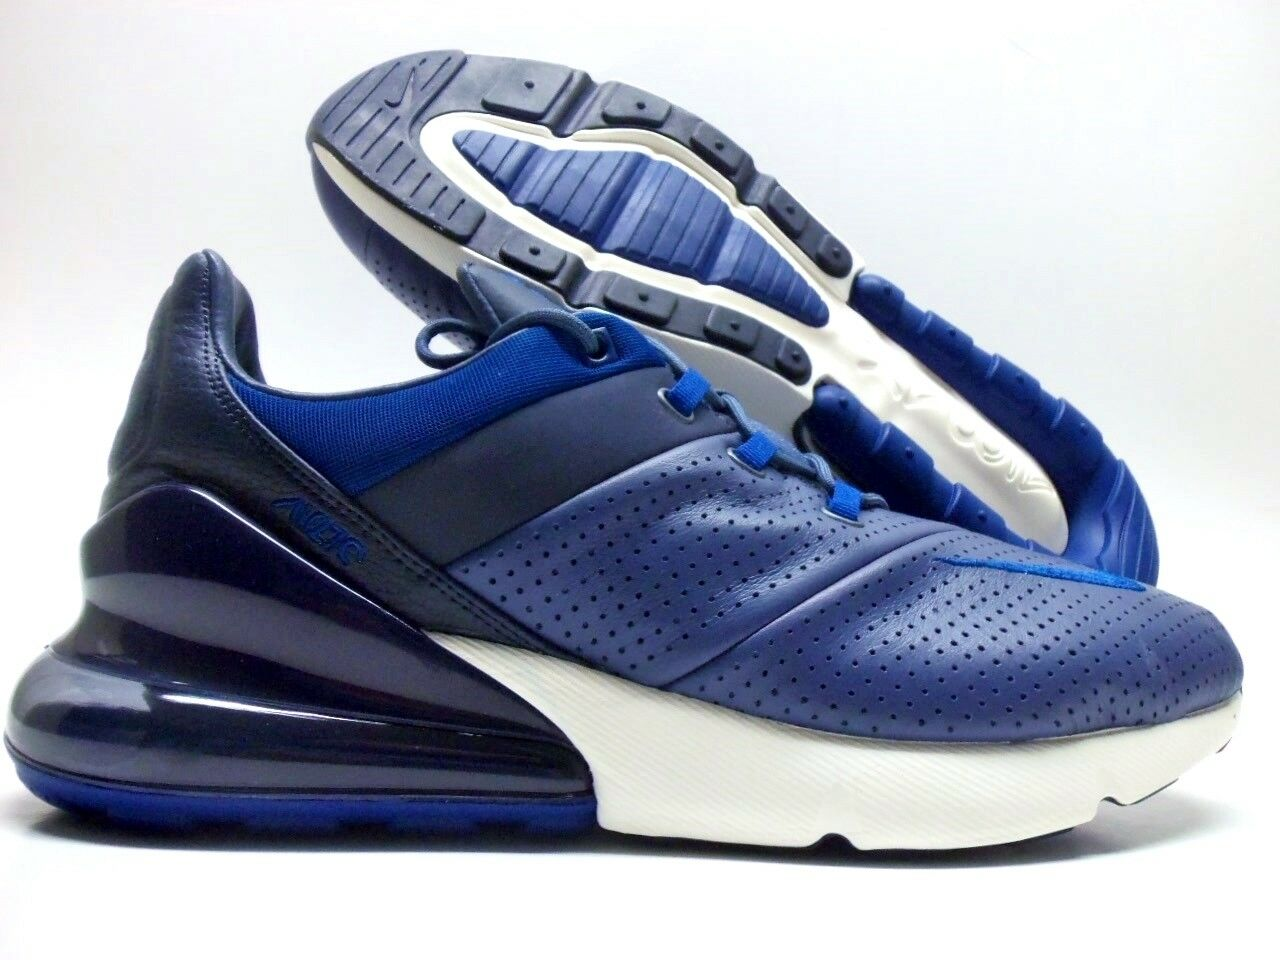 0f2d5c1e366 NIKE AIR MAX 270 PREMIUM DIFFUSED blueE GYM MEN'S 10 [AO8283-400] SIZE  blueE nxkqpo7949-Athletic Shoes